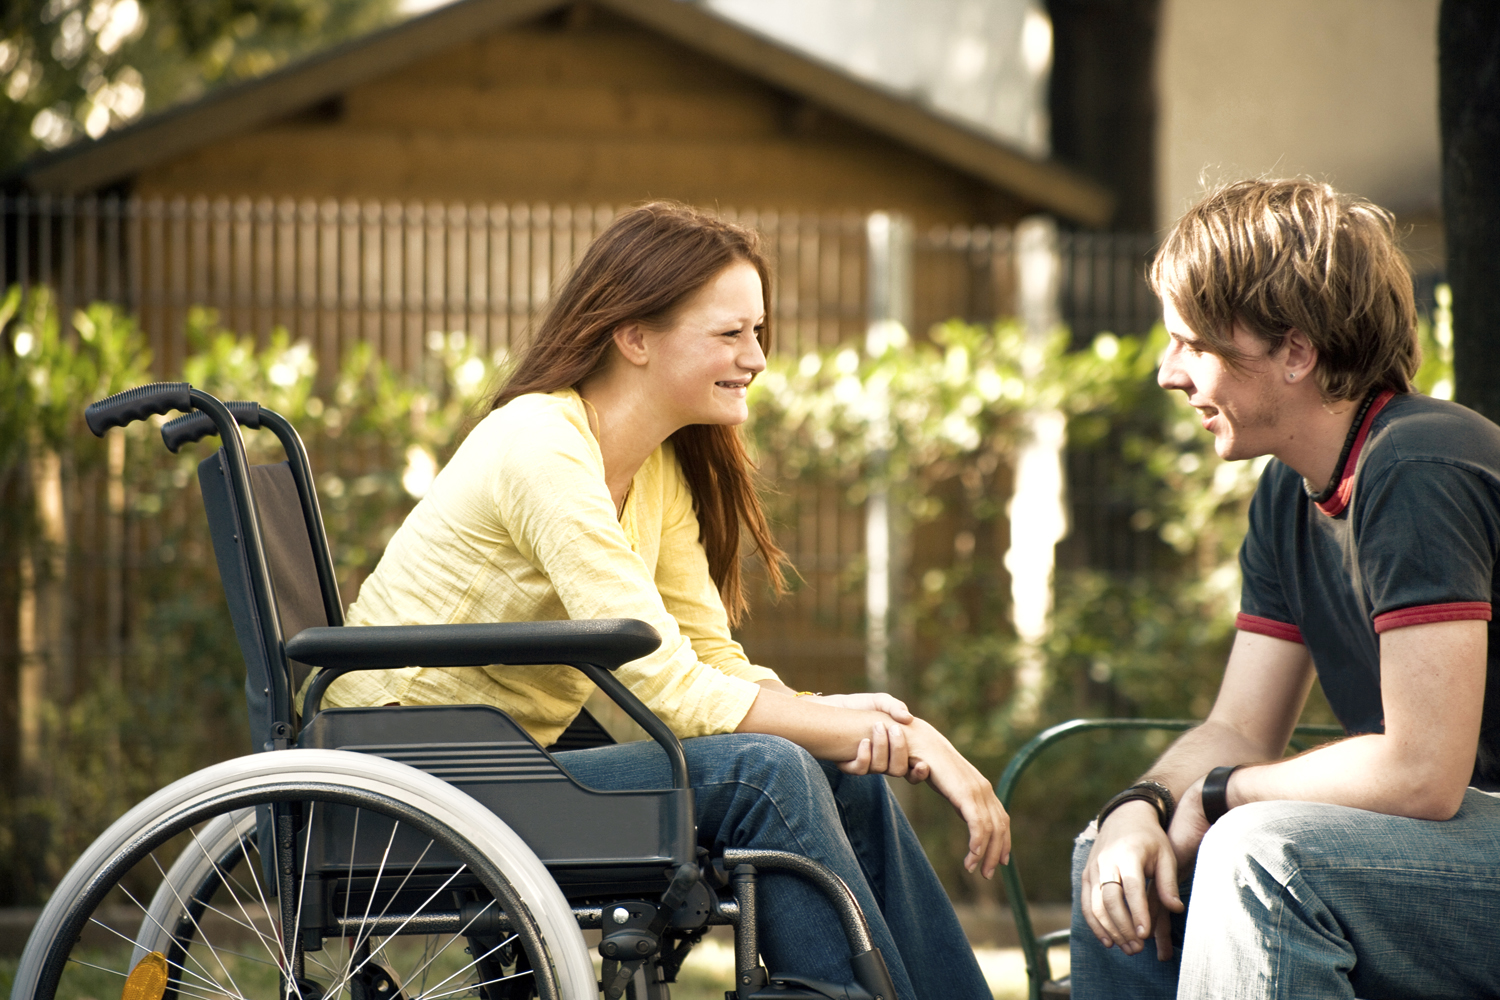 Disabled Dating - #1 Disabled Dating Site for Disabled